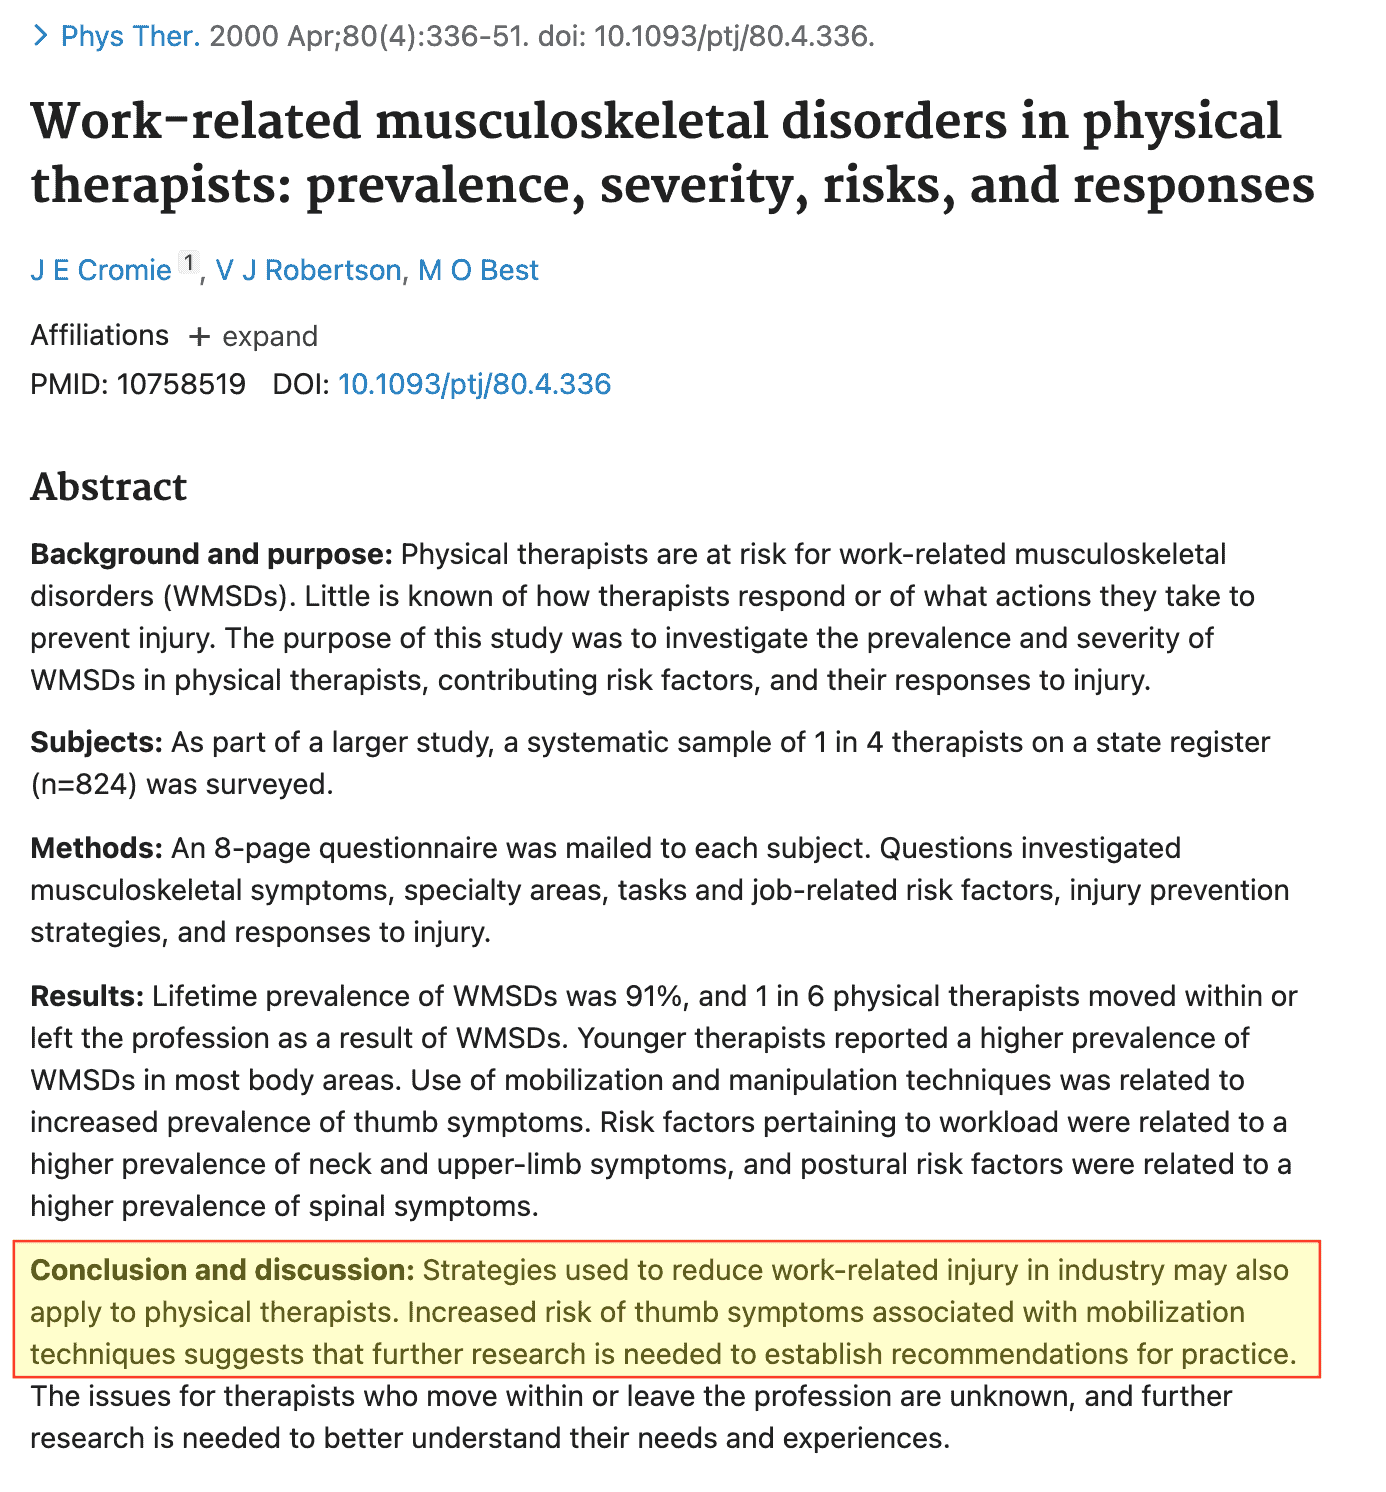 Studio Problemi mano Fisioterapisti Work-Related Musculoskeletal Disorders in Physical Therapists: Prevalence, Severity, Risks, and Responses PTrJ